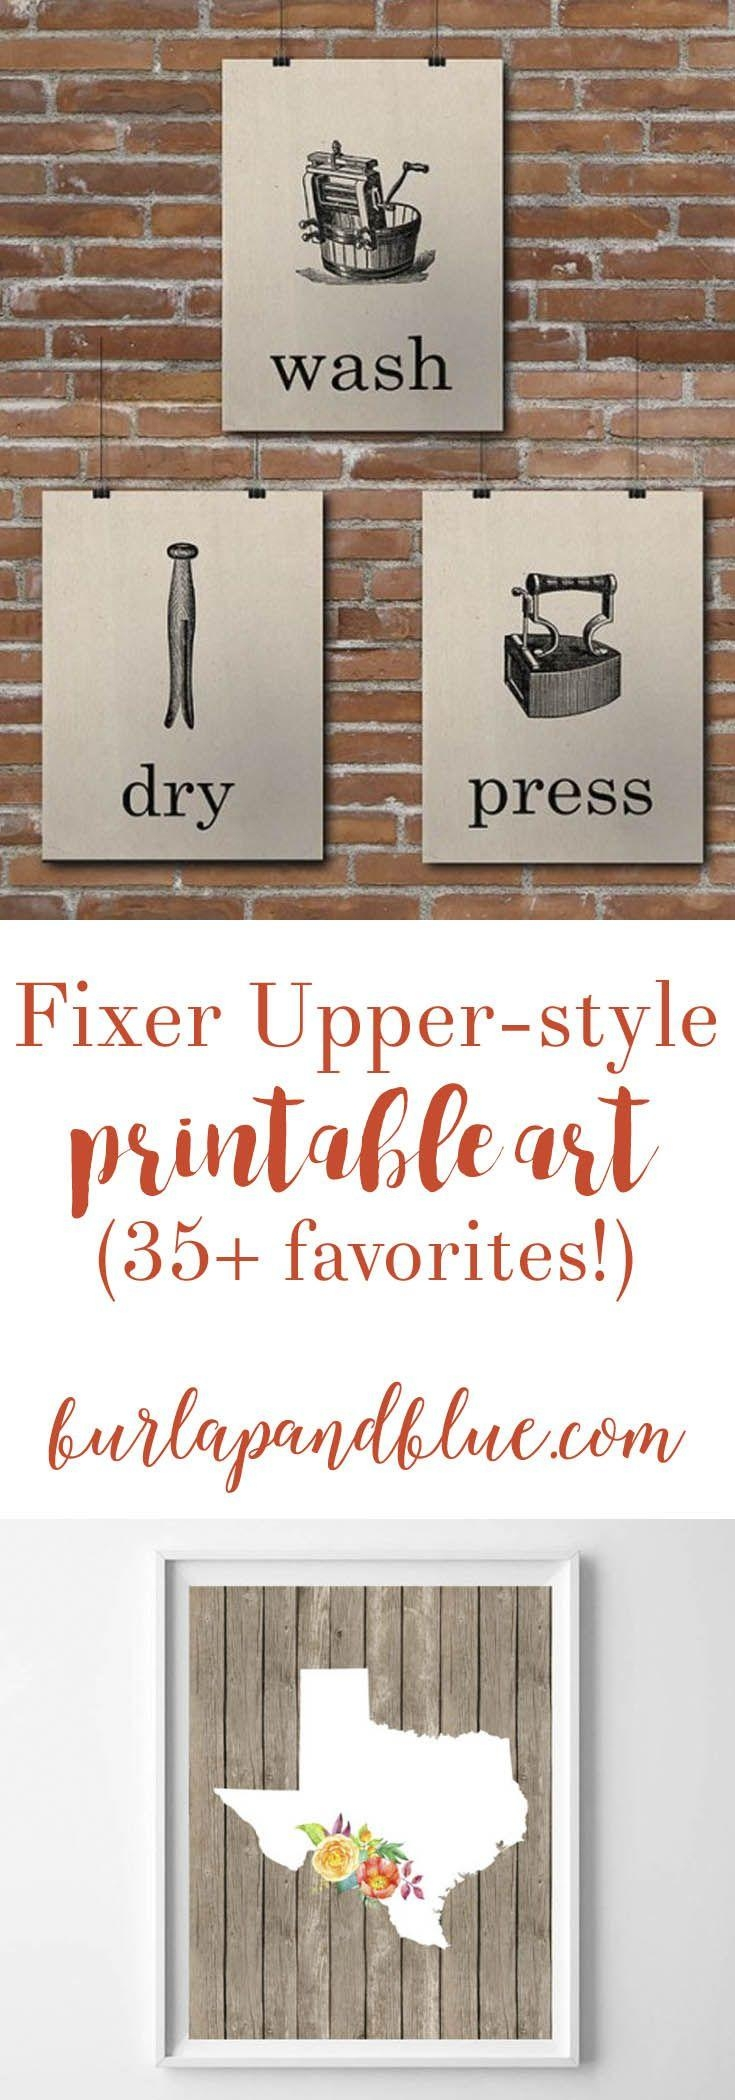 Best 25+ Laundry Room Wall Decor Ideas Only On Pinterest   Laundry Throughout Laundry Room Wall Art (Image 4 of 20)